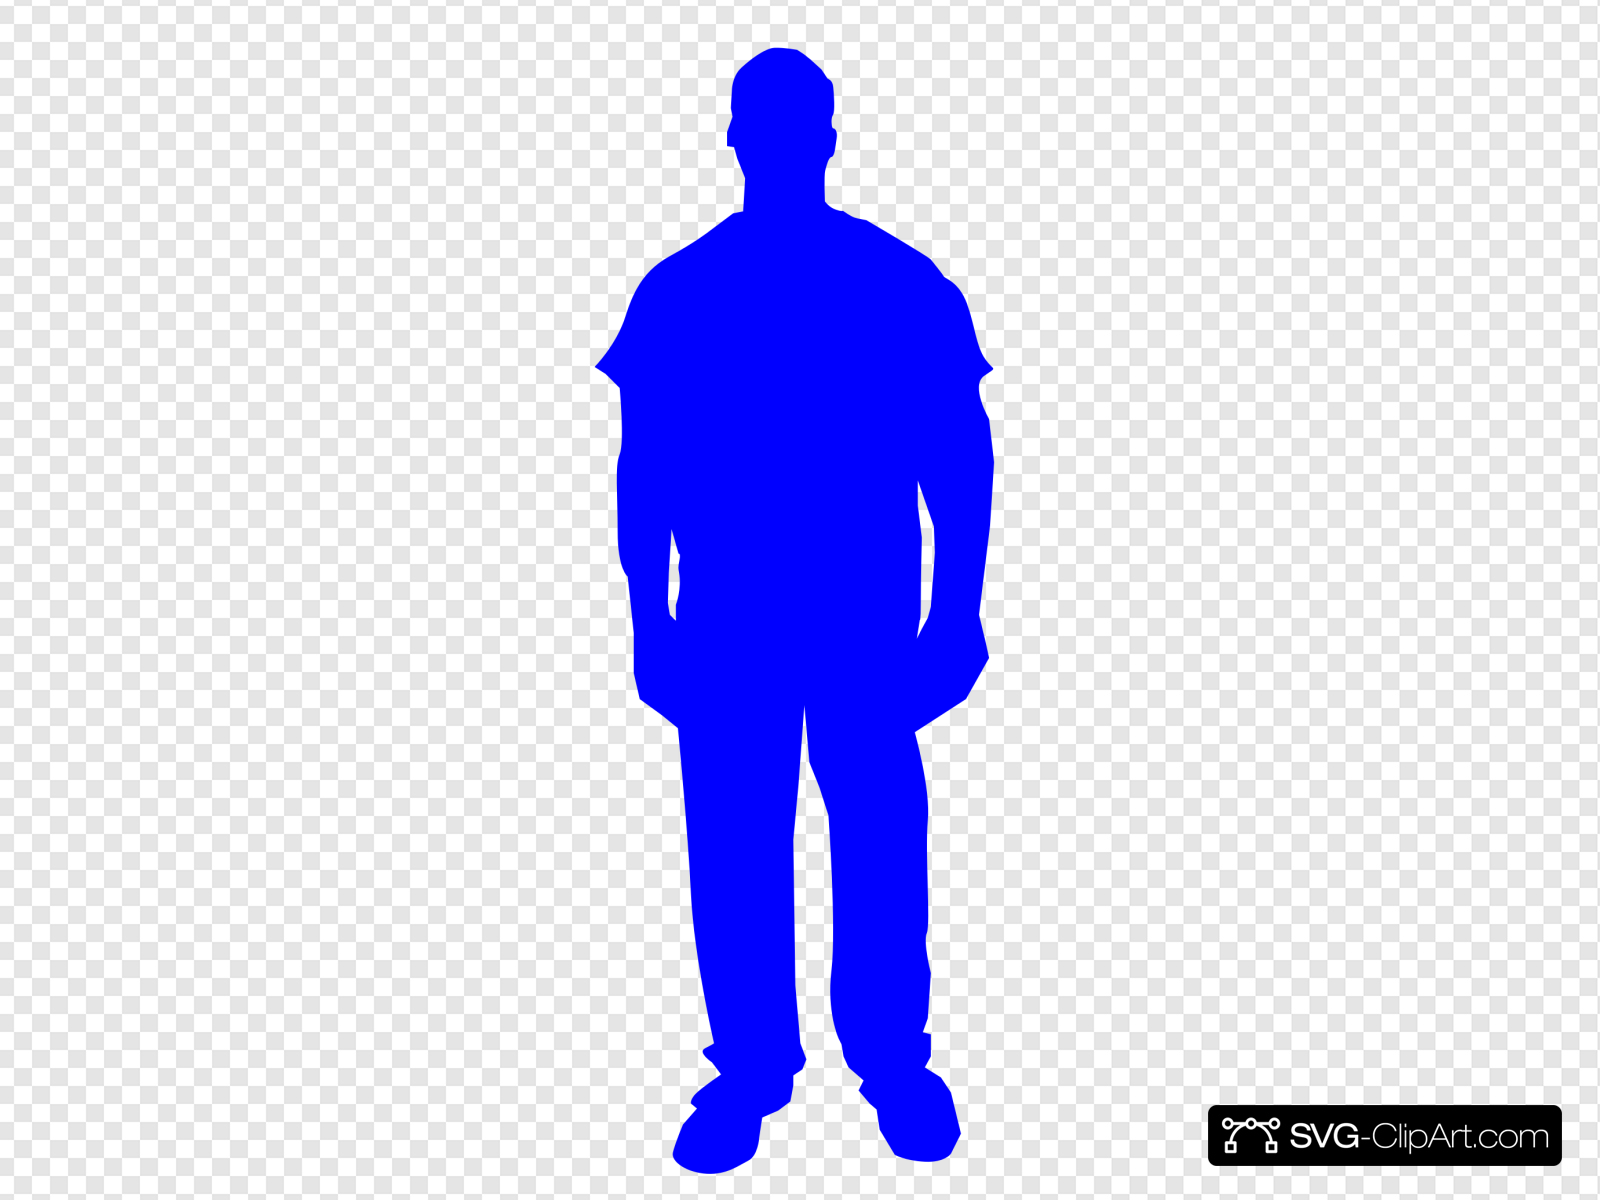 Blue Person Outline Clip art, Icon and SVG.